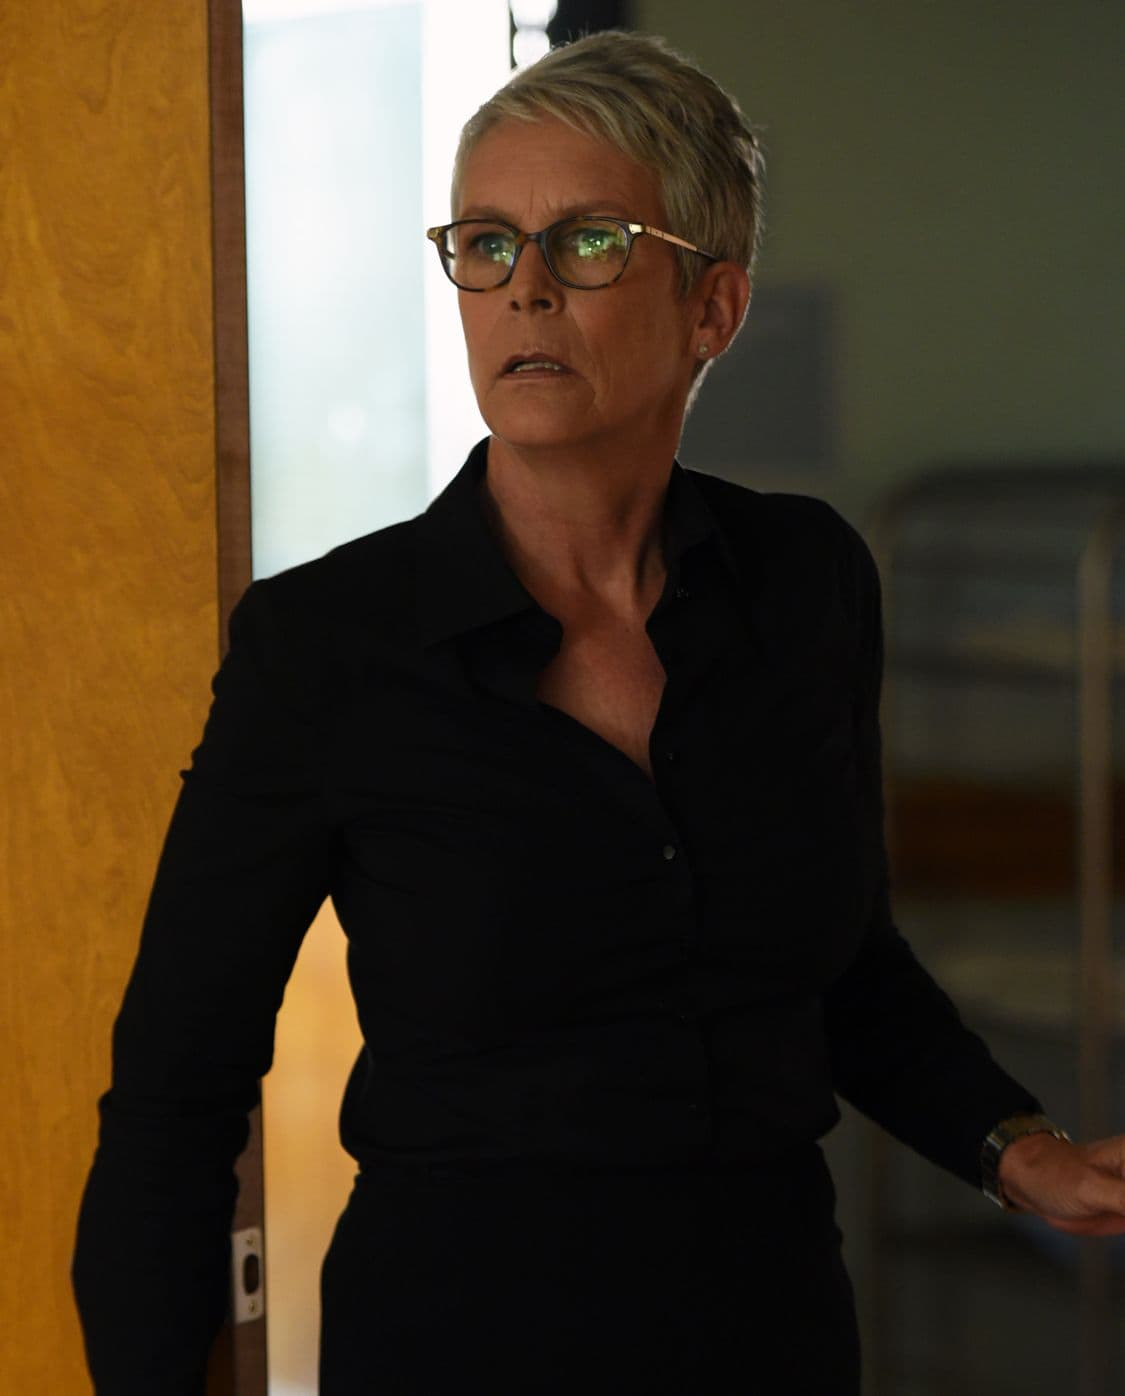 """SCREAM QUEENS: Jamie Lee Curtis in the all-new """"Handidates"""" episode of SCREAM QUEENS airing Tuesday, Oct. 11 (9:01-10:00 PM ET/PT) on FOX. Cr: Michael Becker / FOX. © 2016 FOX Broadcasting Co."""